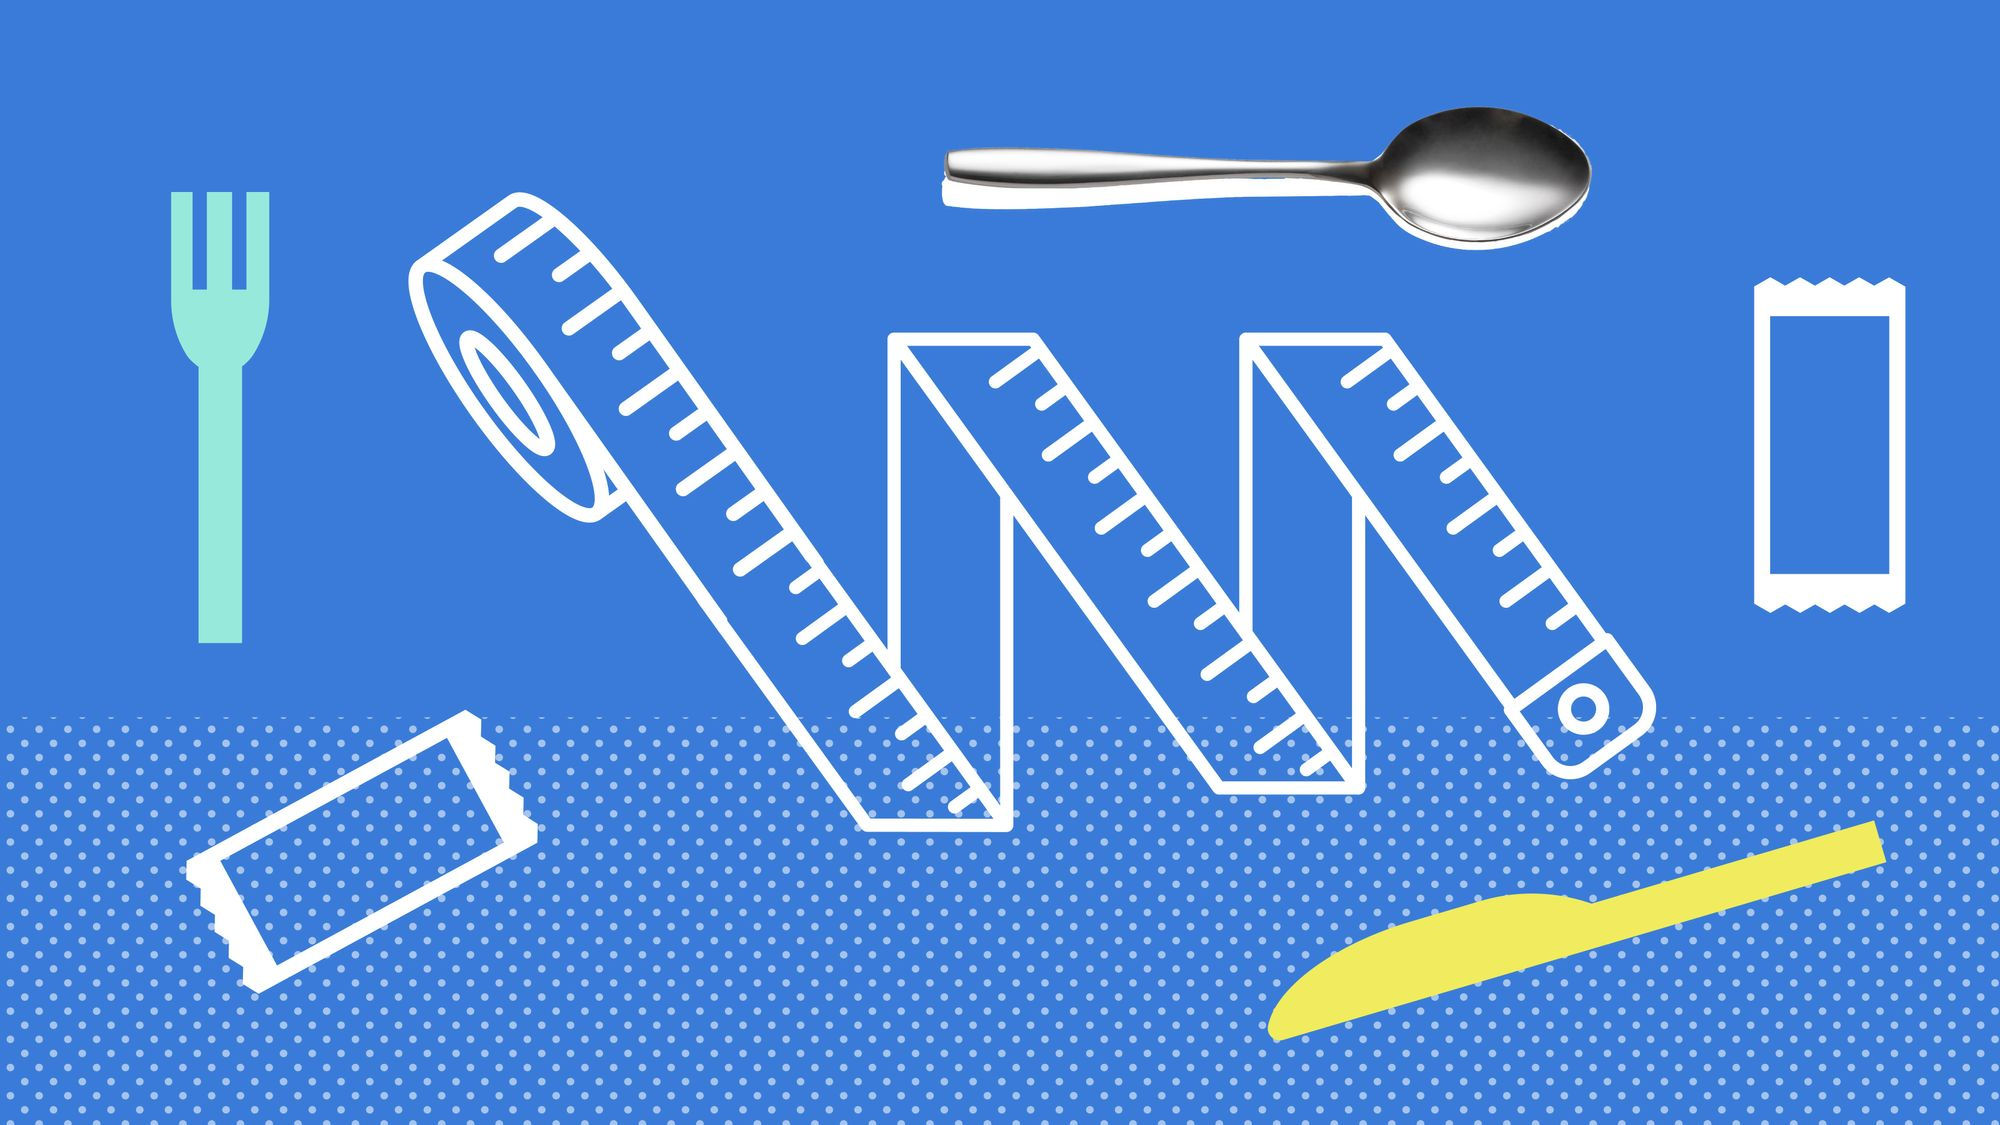 """Graphic representing the stuff you would find in """"that kitchen drawer, the one stuffed with gadgets, utensils, and sauce packets."""""""